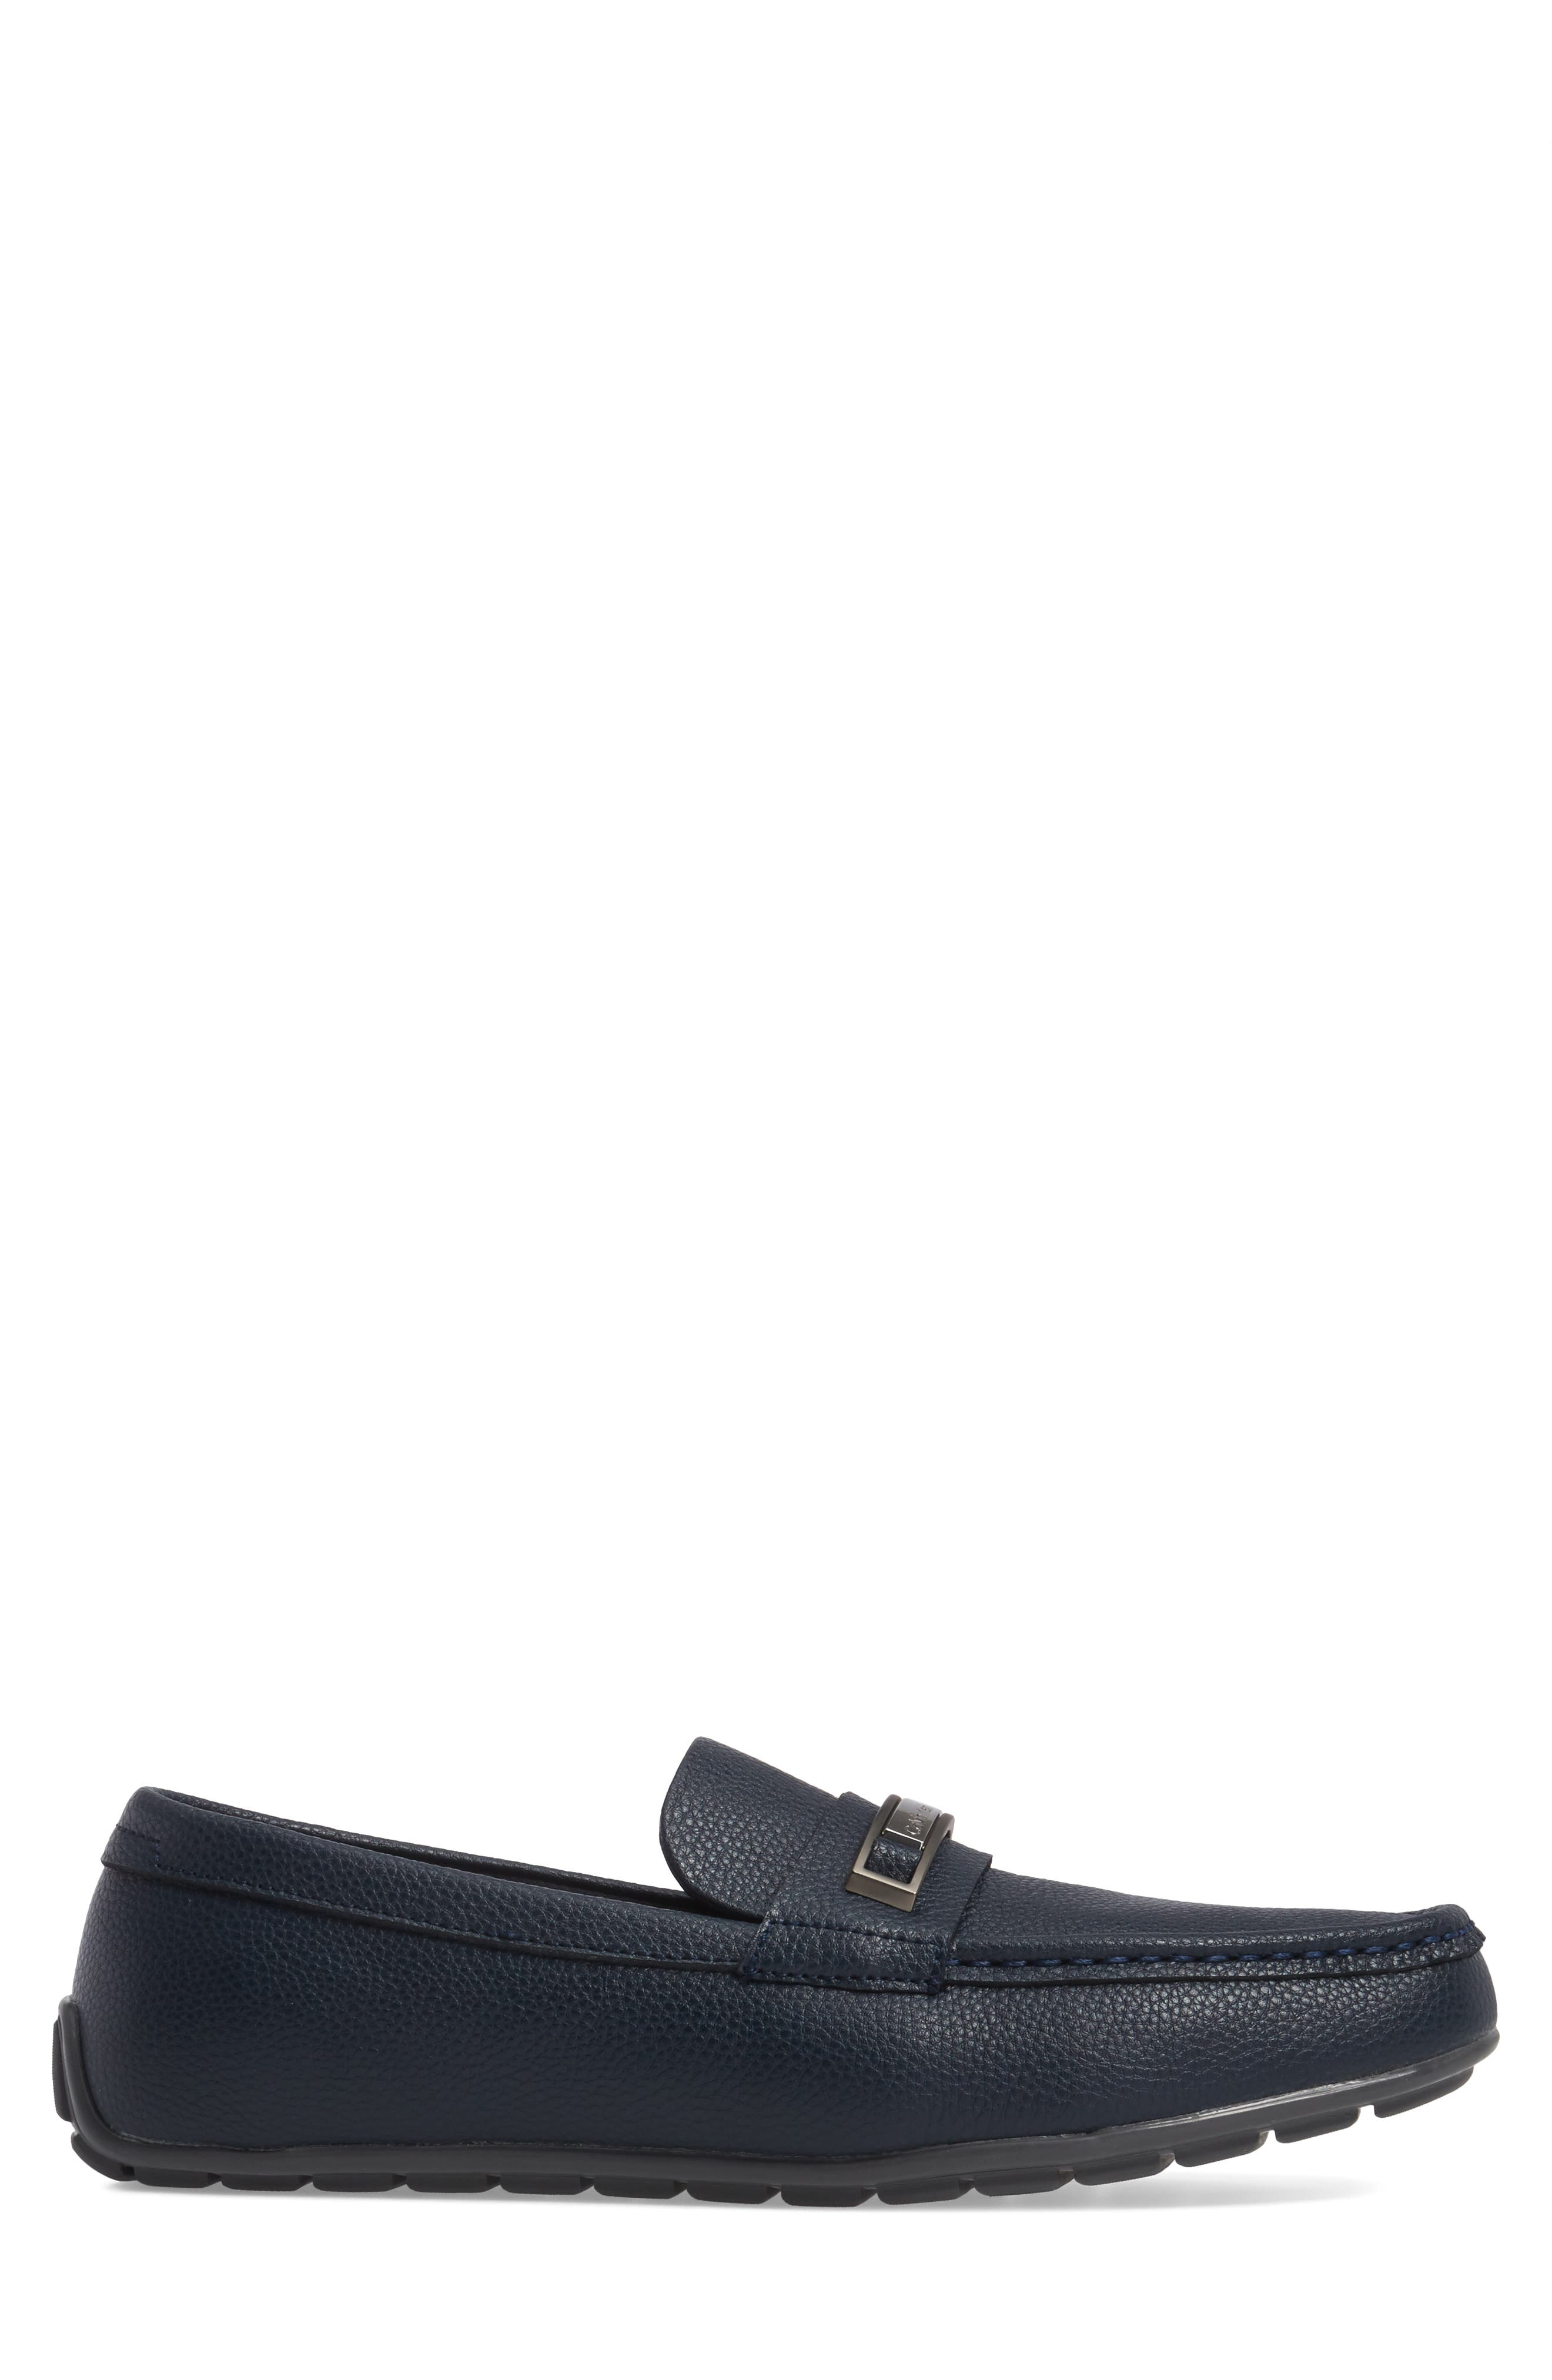 Irving Driving Loafer,                             Alternate thumbnail 12, color,